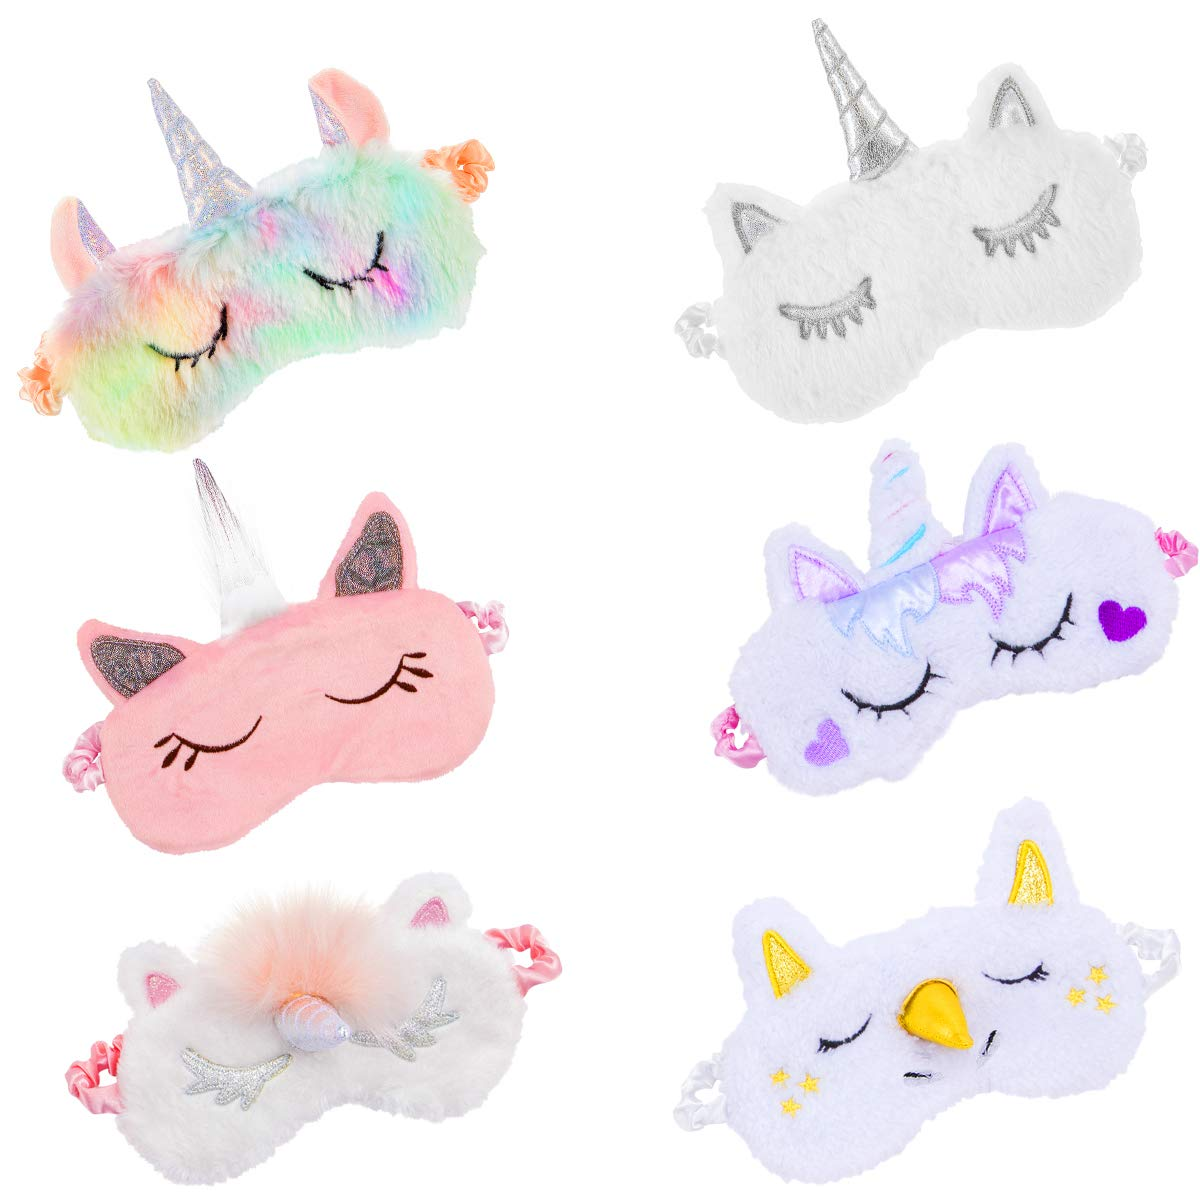 Biubee 6 Pack Soft Plush Unicorn Sleeping Mask- Cute Unicorn Horn Blindfold Eye Cover for Women Girls Kids Travel Nap Night Sleeping by Biubee